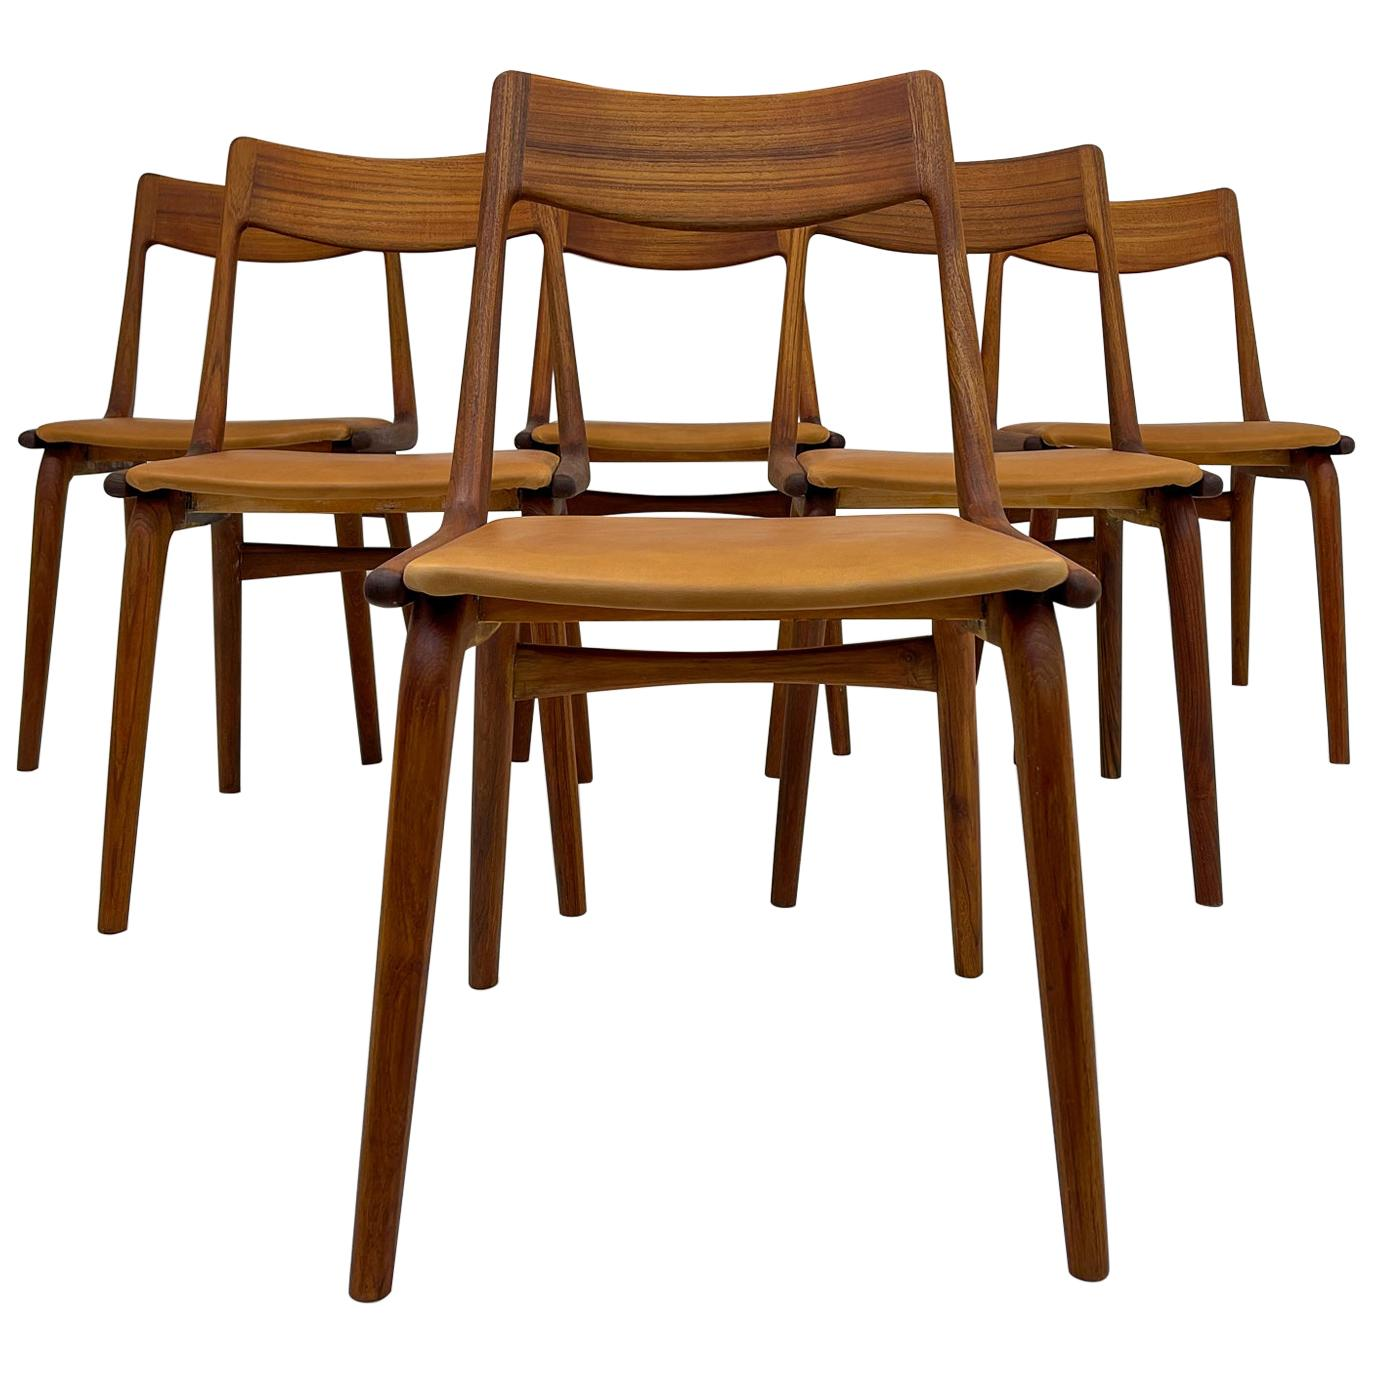 Midcentury Alfred Christiansen Teak and Leather 'Boomerang' Chairs